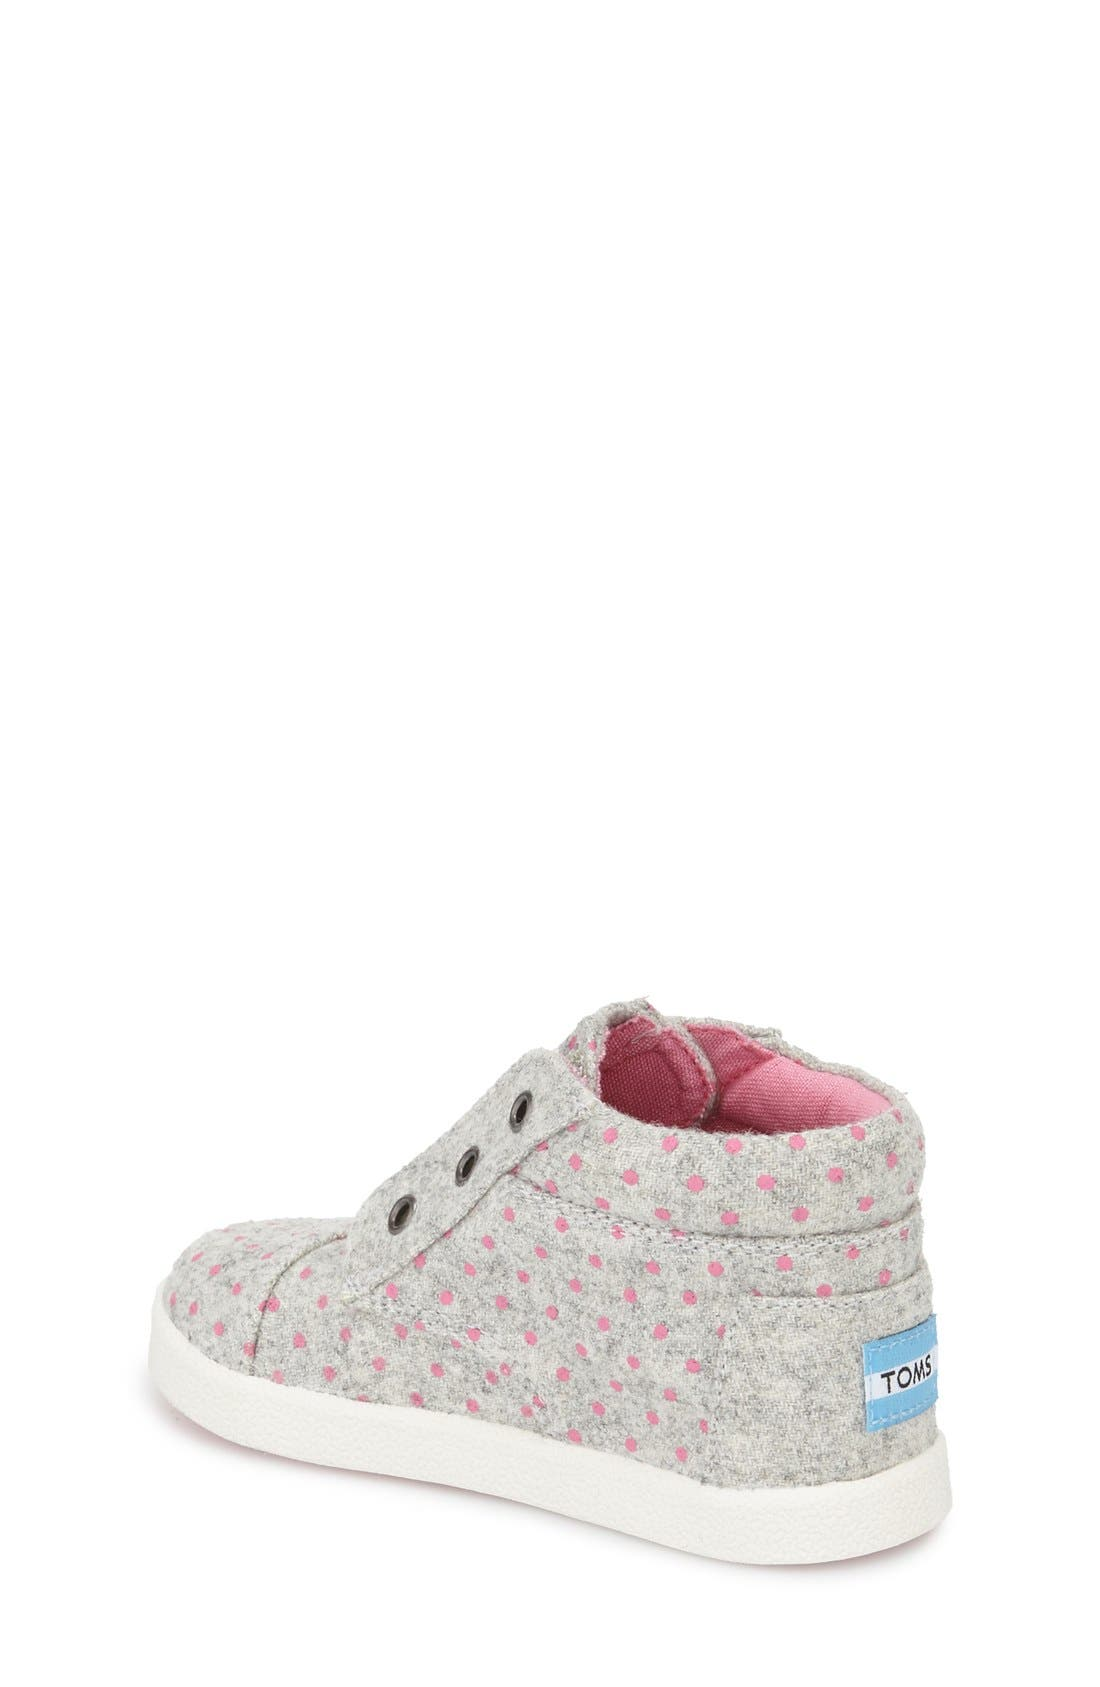 Alternate Image 2  - TOMS 'Paseo' High Top Sneaker (Baby, Walker & Toddler)